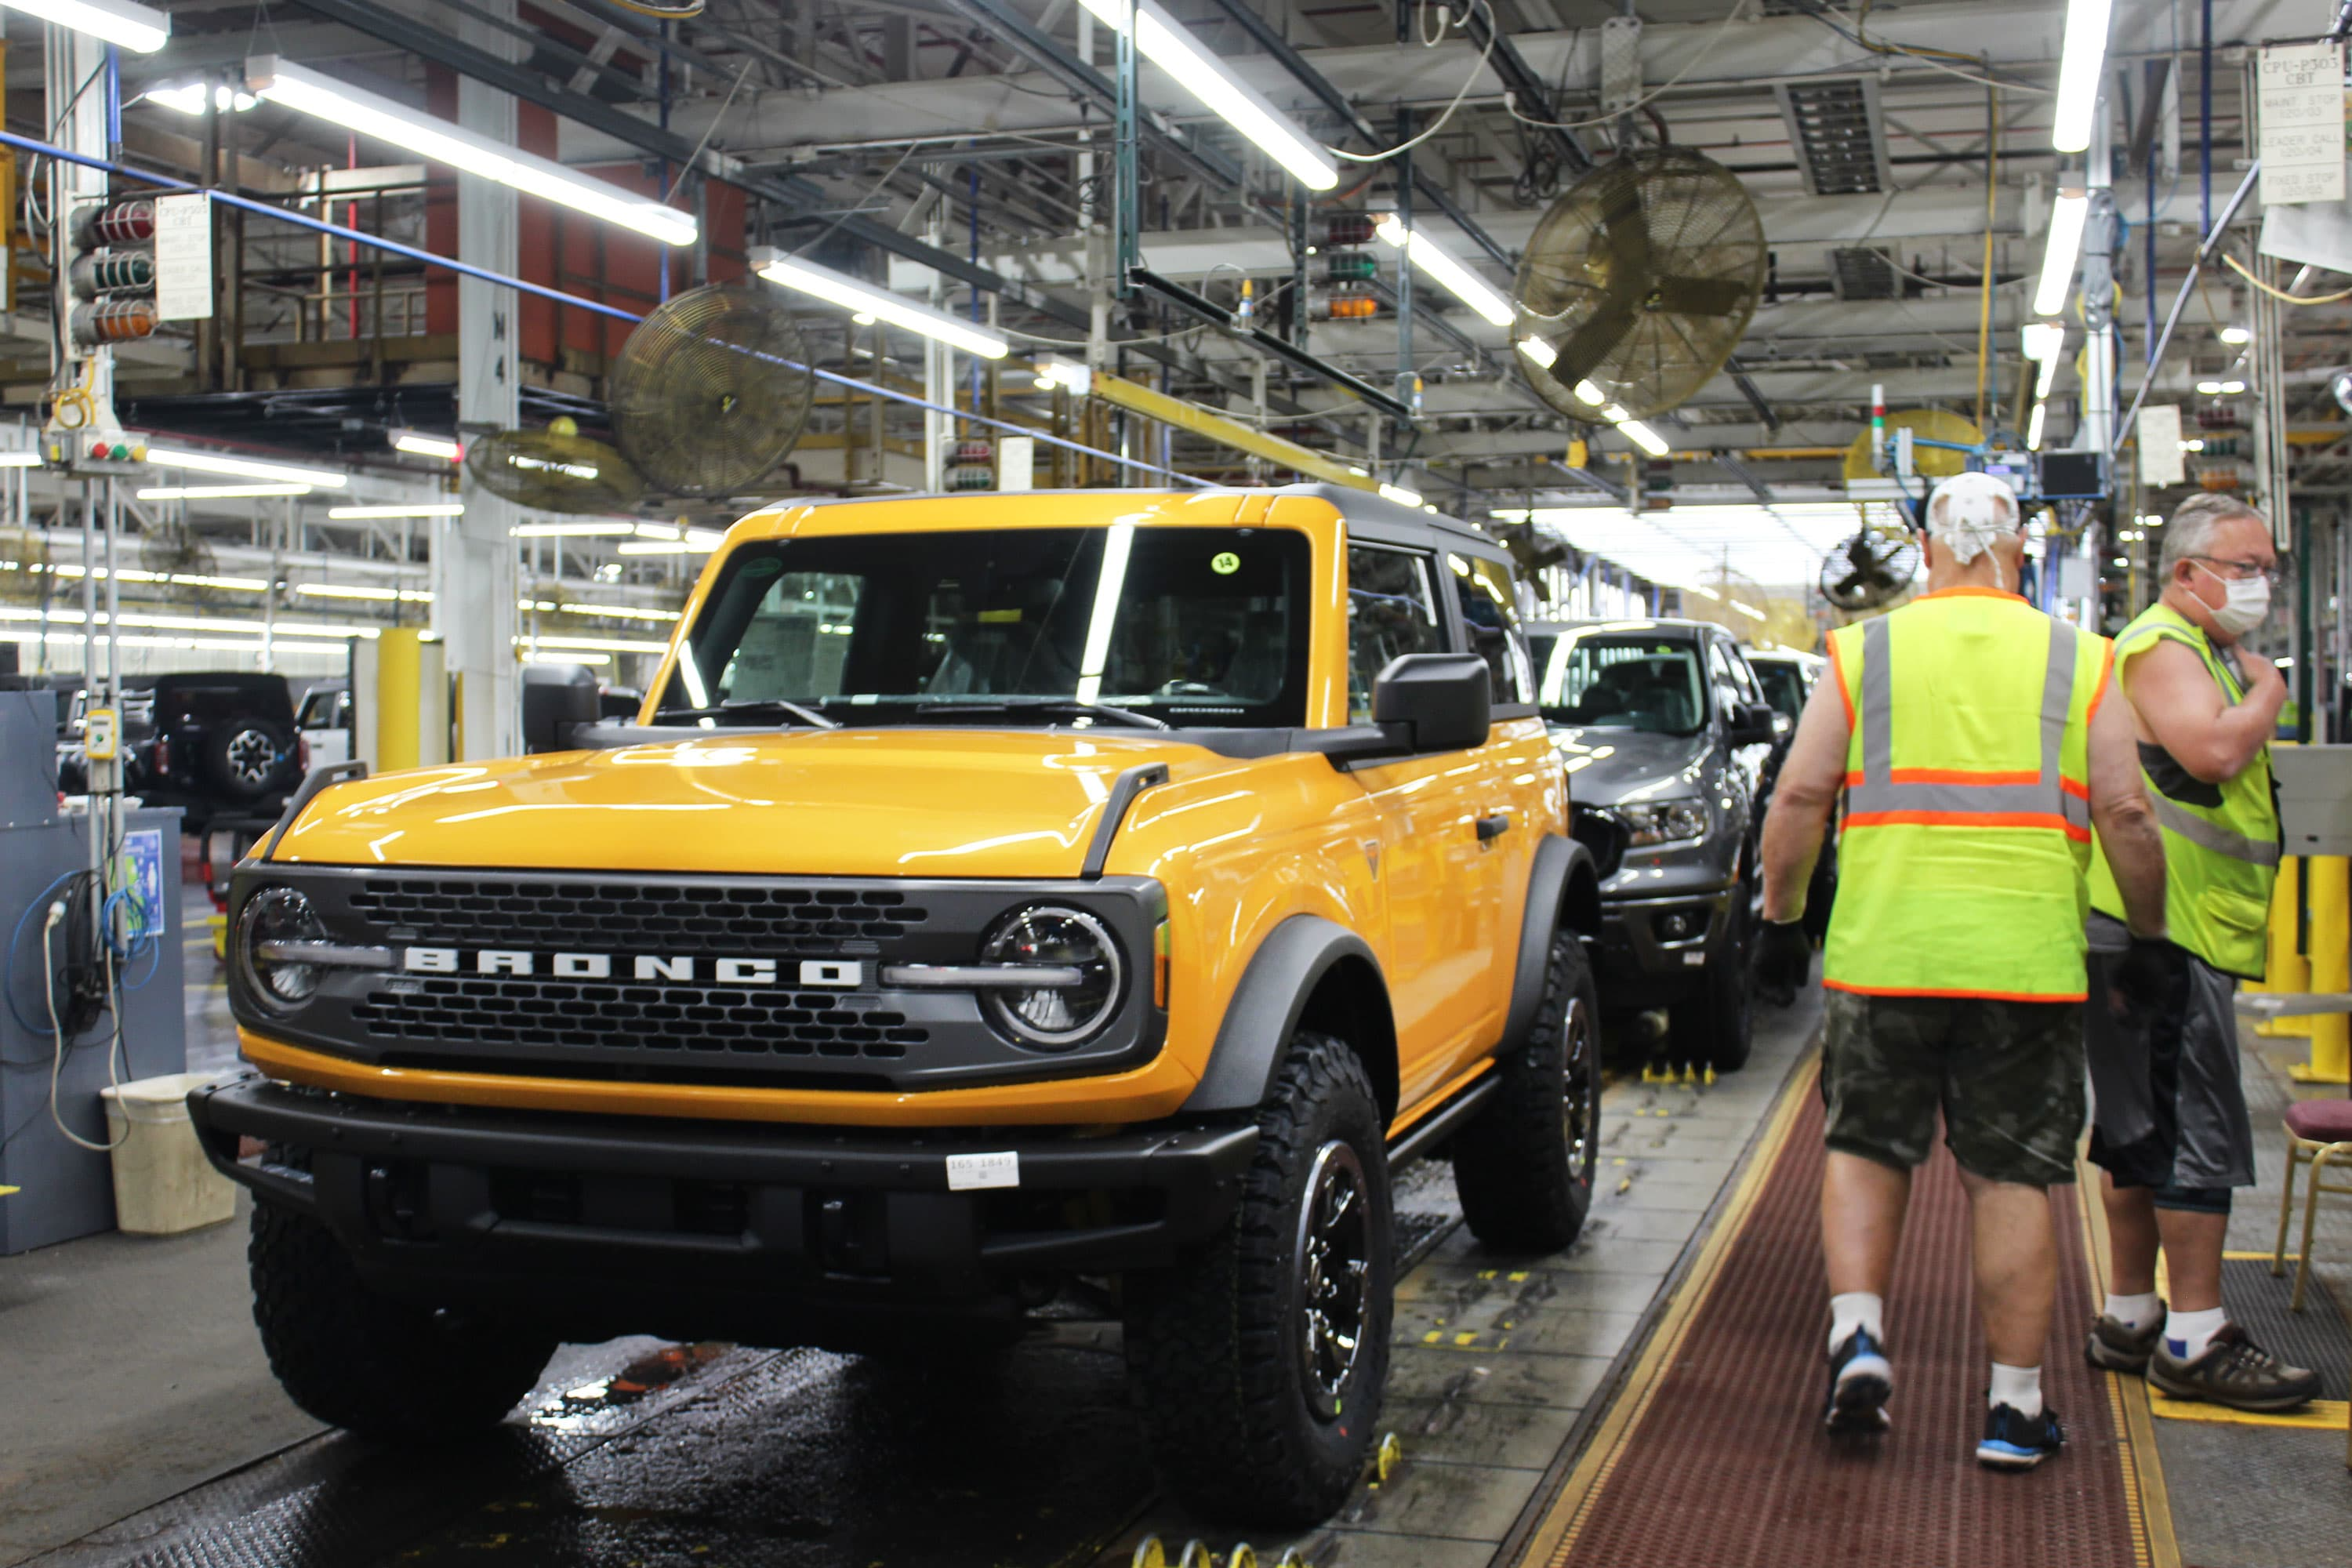 Production snags cause Ford to delay deliveries of Ford Bronco SUV and Mustang Mach-E